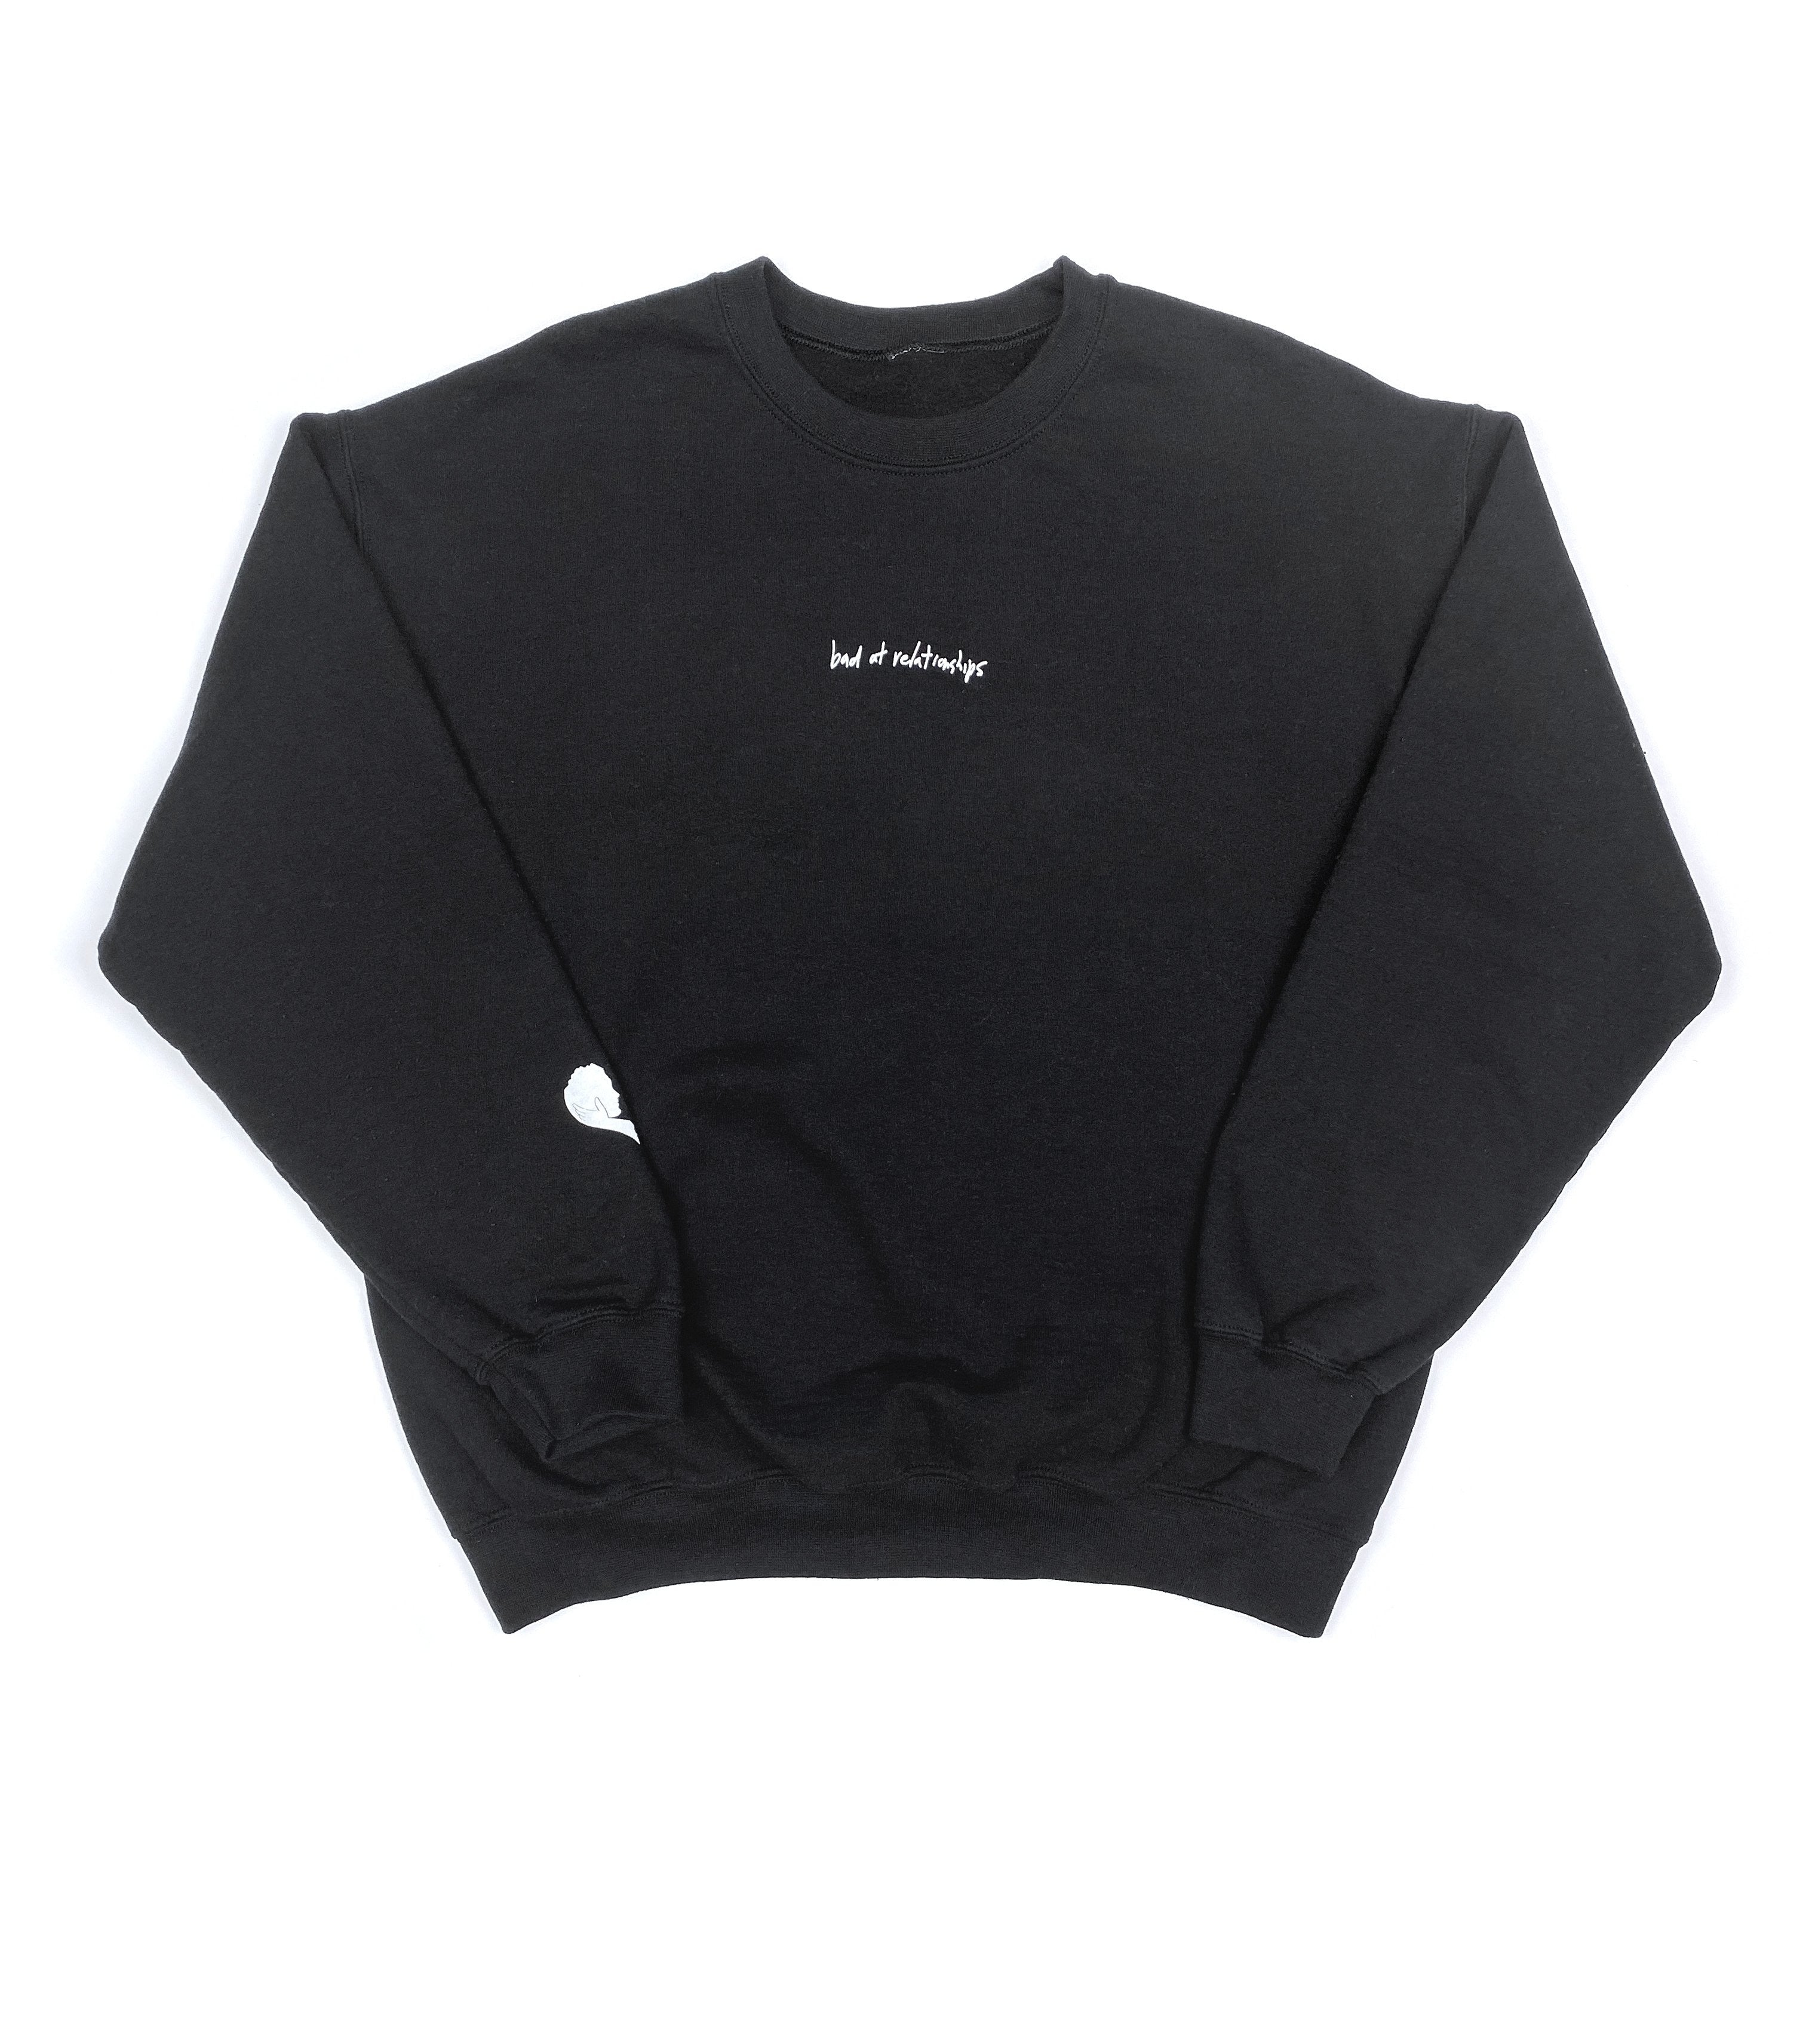 BAD AT RELATIONSHIPS CREW NECK SWEATSHIRT BLACK